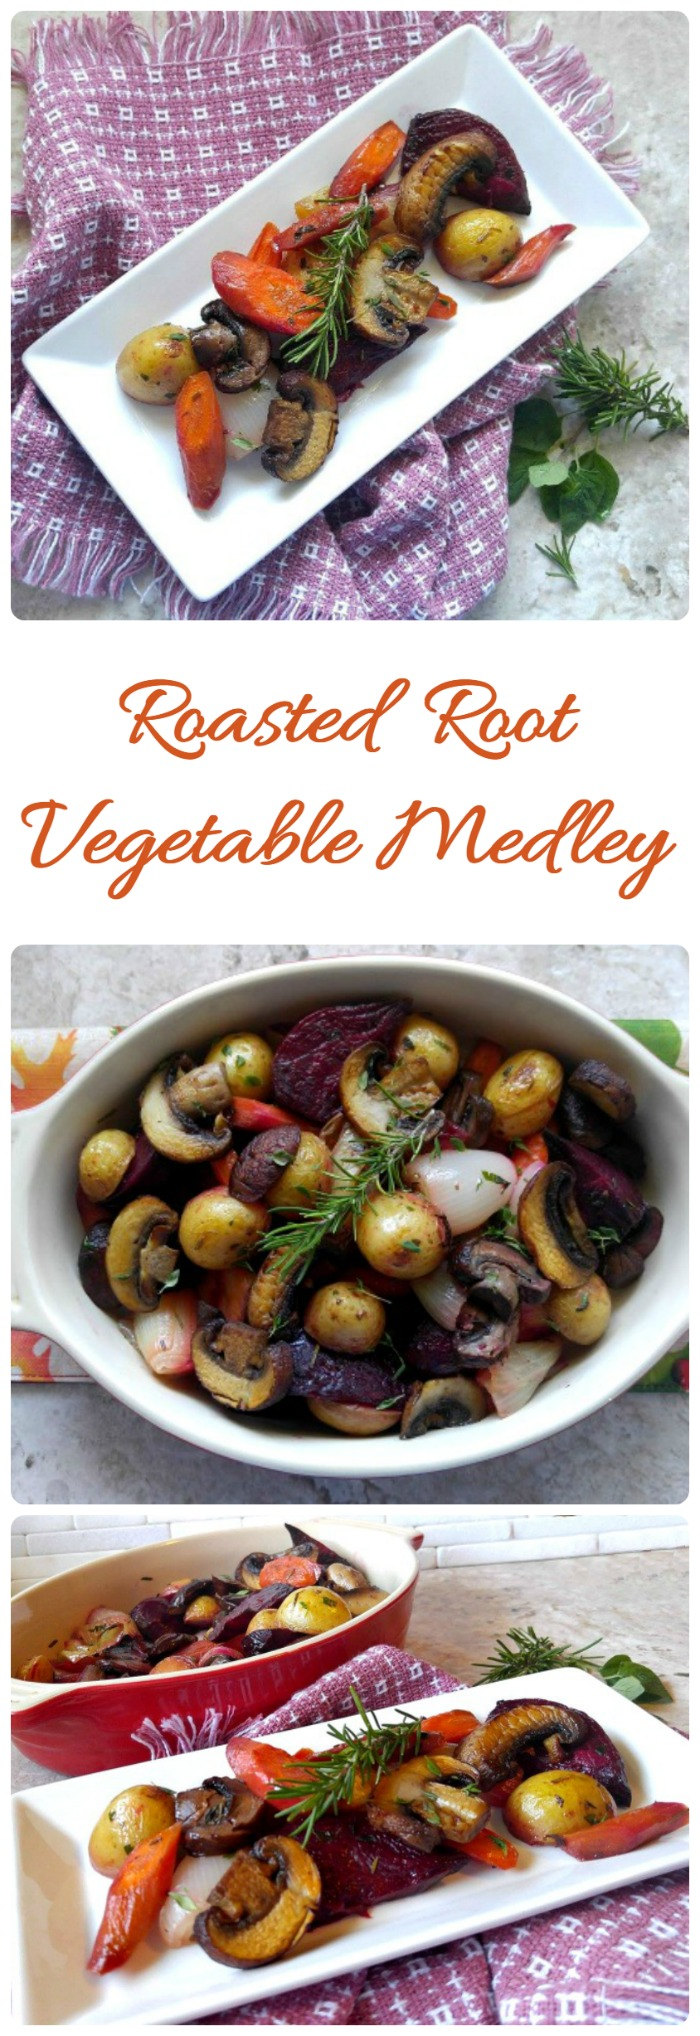 This Roasted root vegetable medley is a perfect fall side dish. #SamsClubMag# CollectiveBias #ad